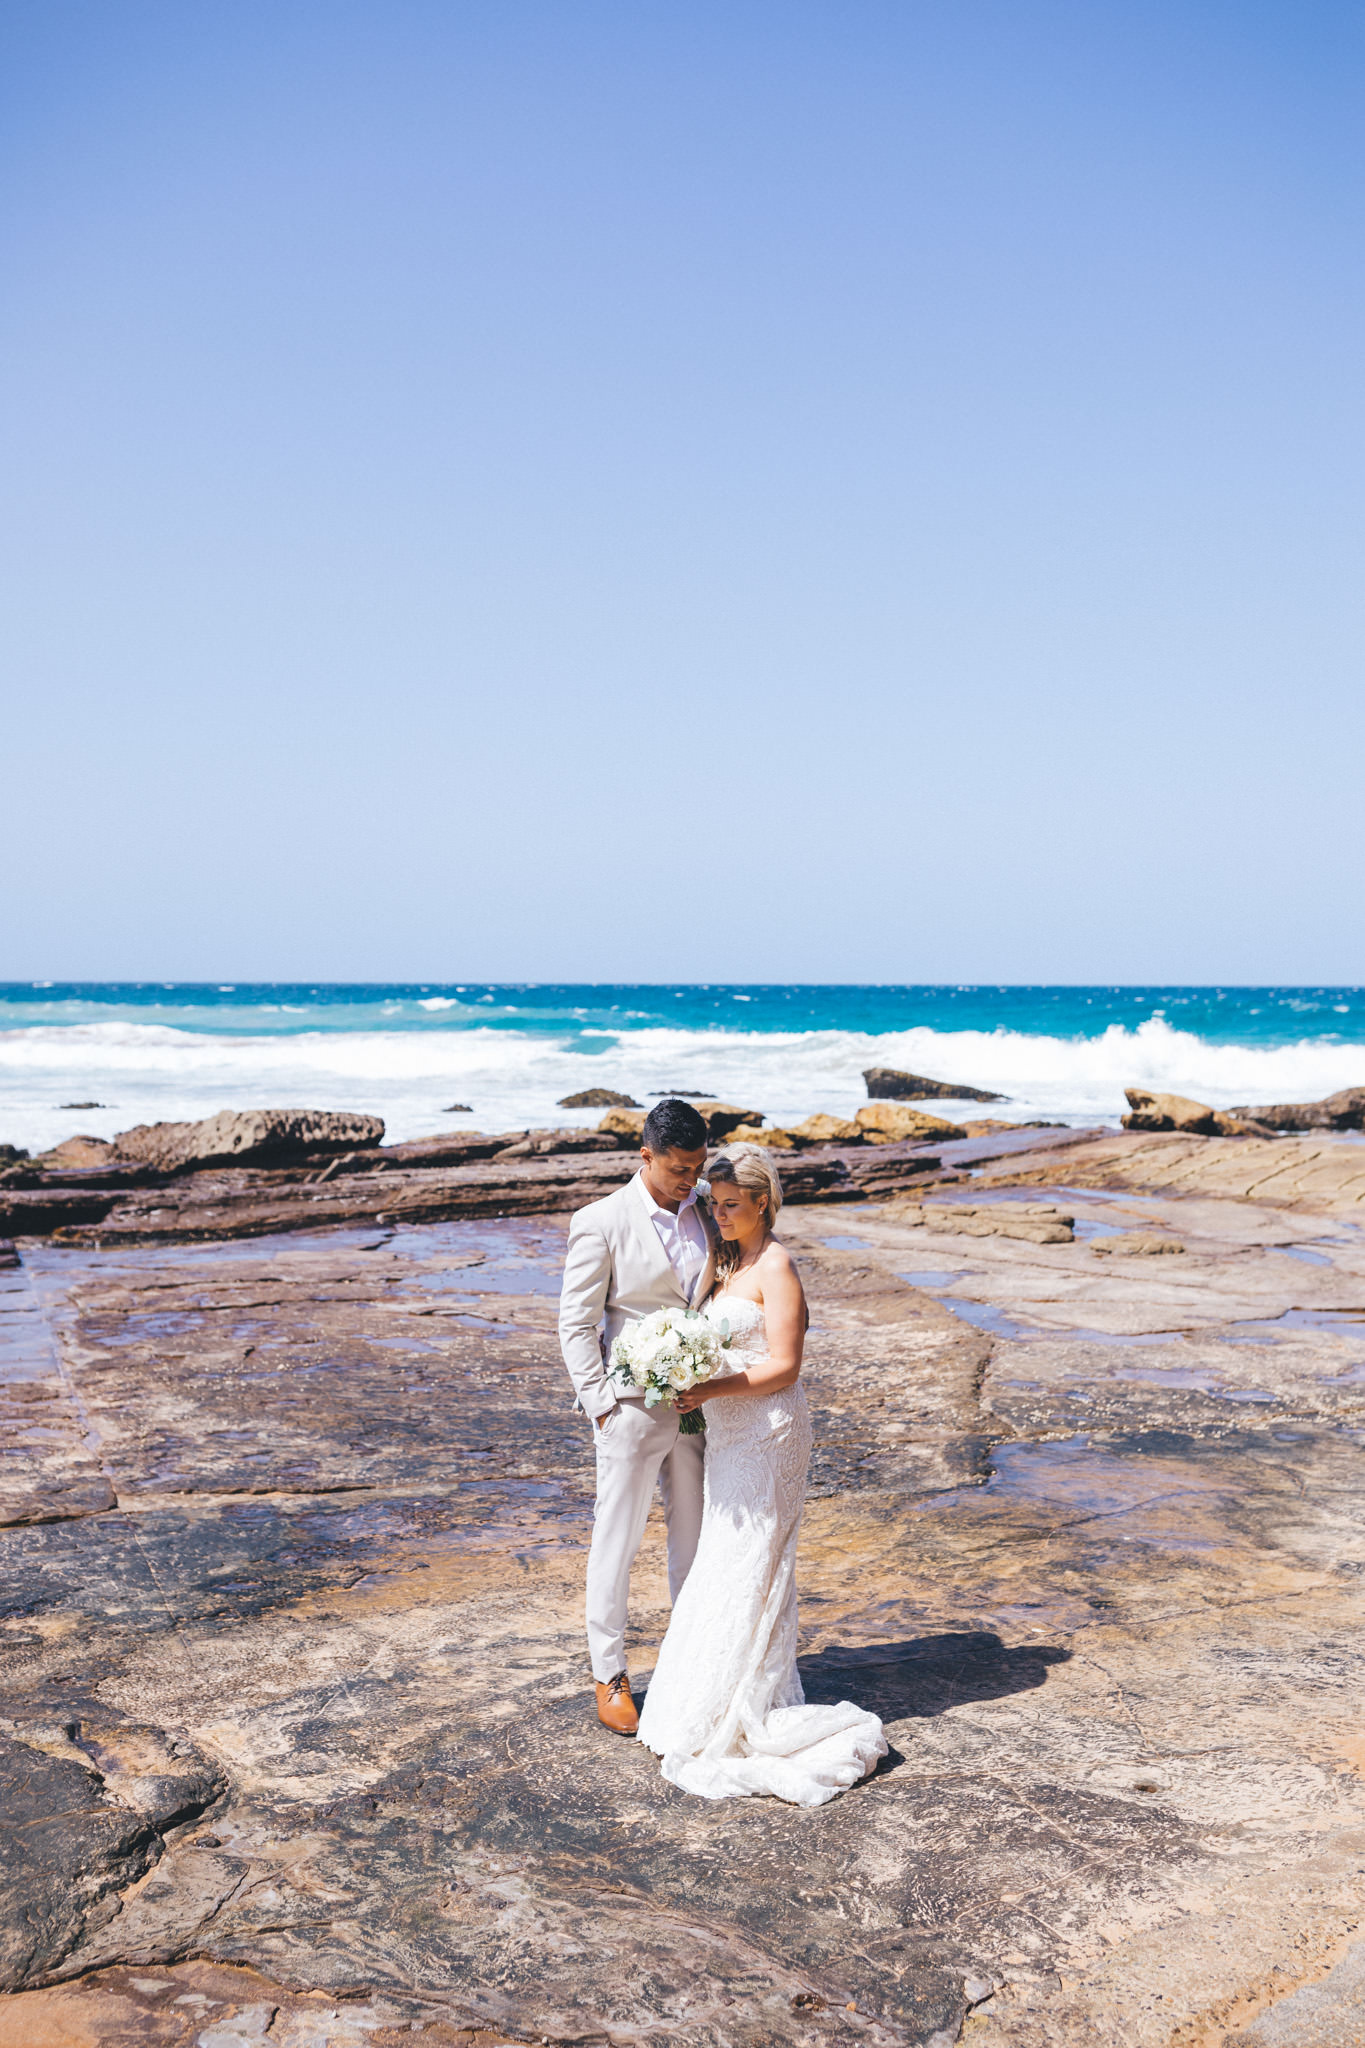 Ann-Marie-Yuen-Photography-Whale-Beach-Wedding-0040.jpg